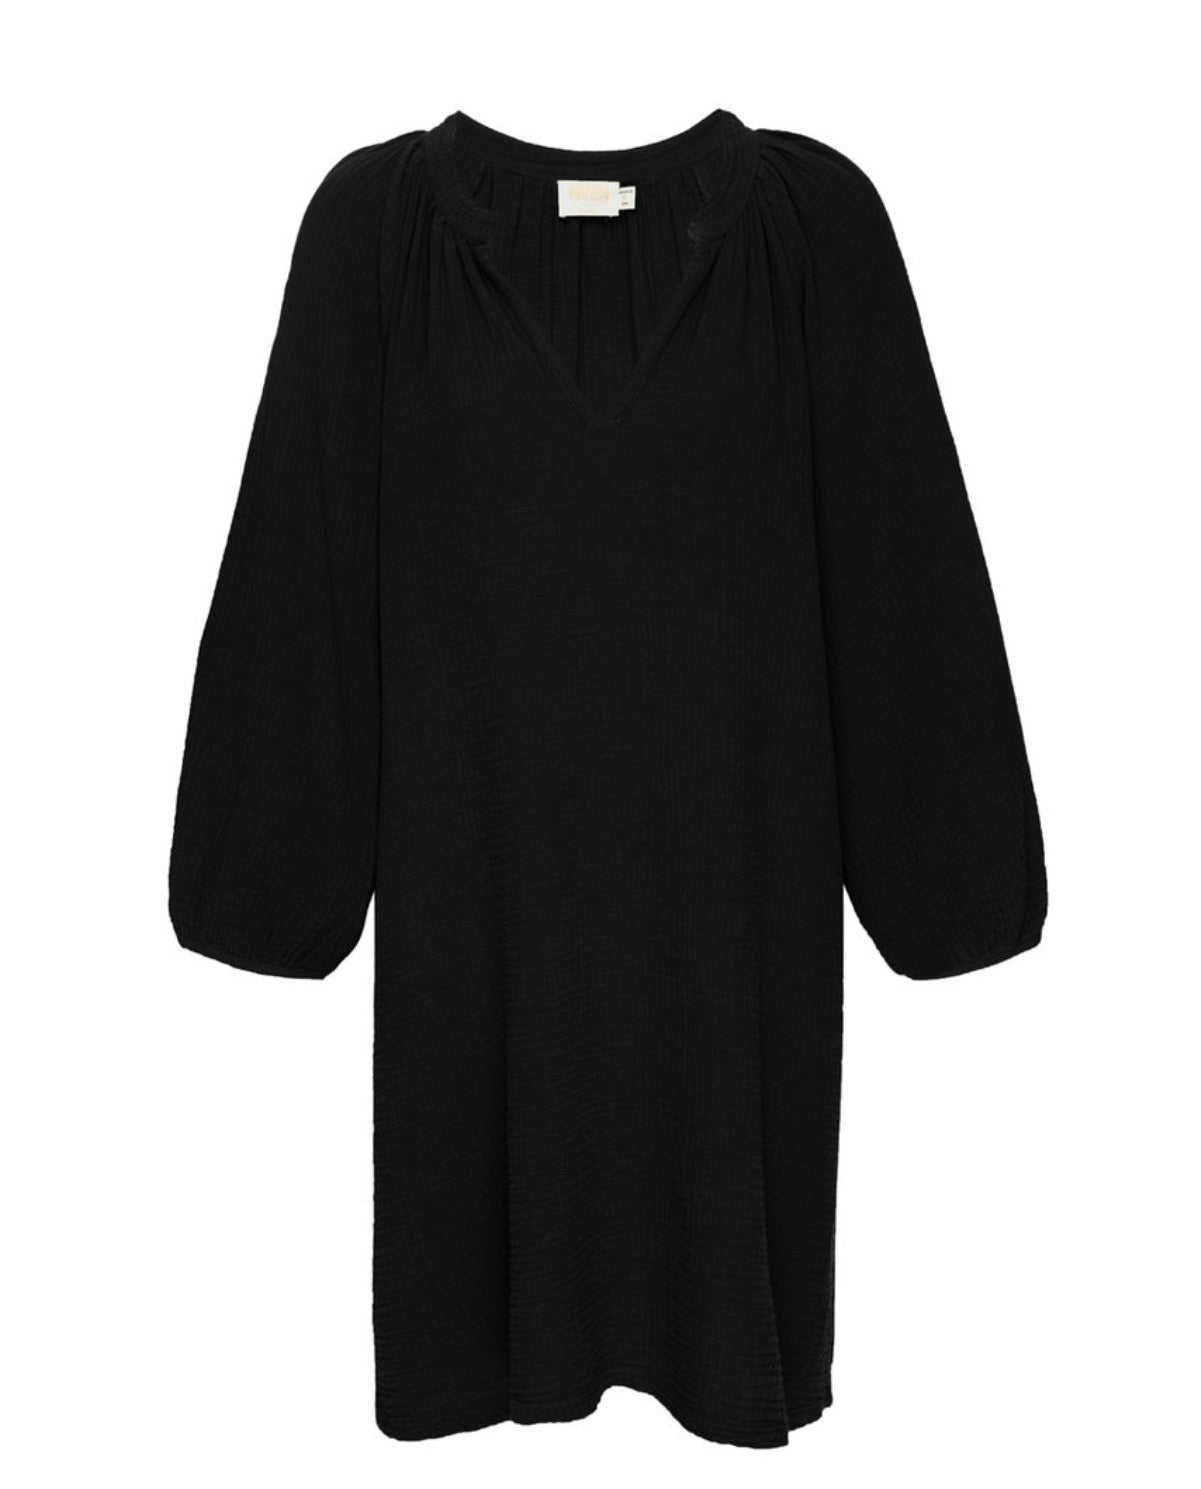 Nala peasant dress - black